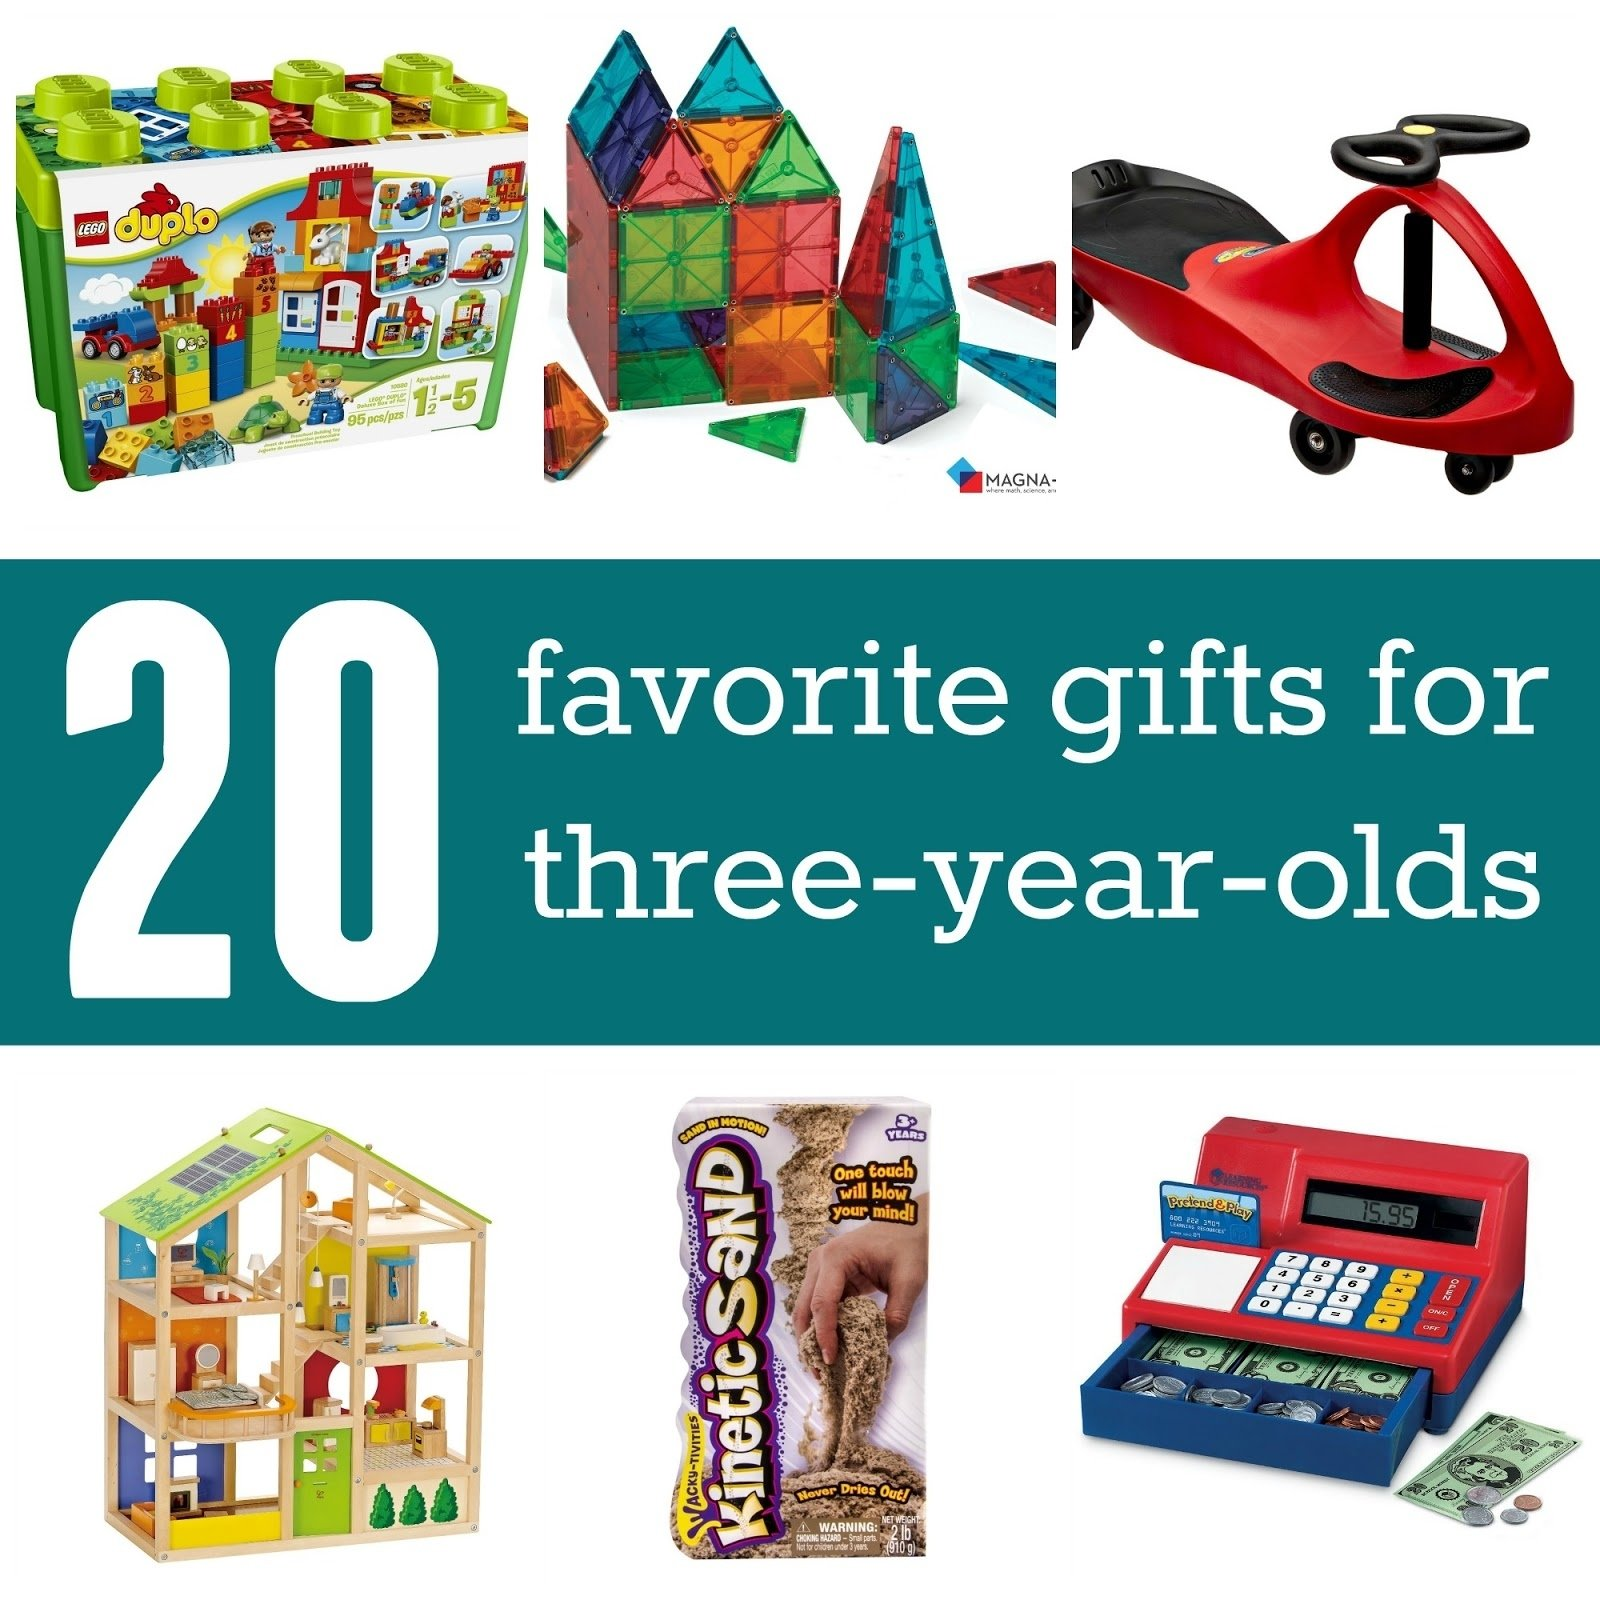 10 Cute Gift Ideas For 3 Year Olds toddler approved favorite gifts for 3 year olds 6 2020